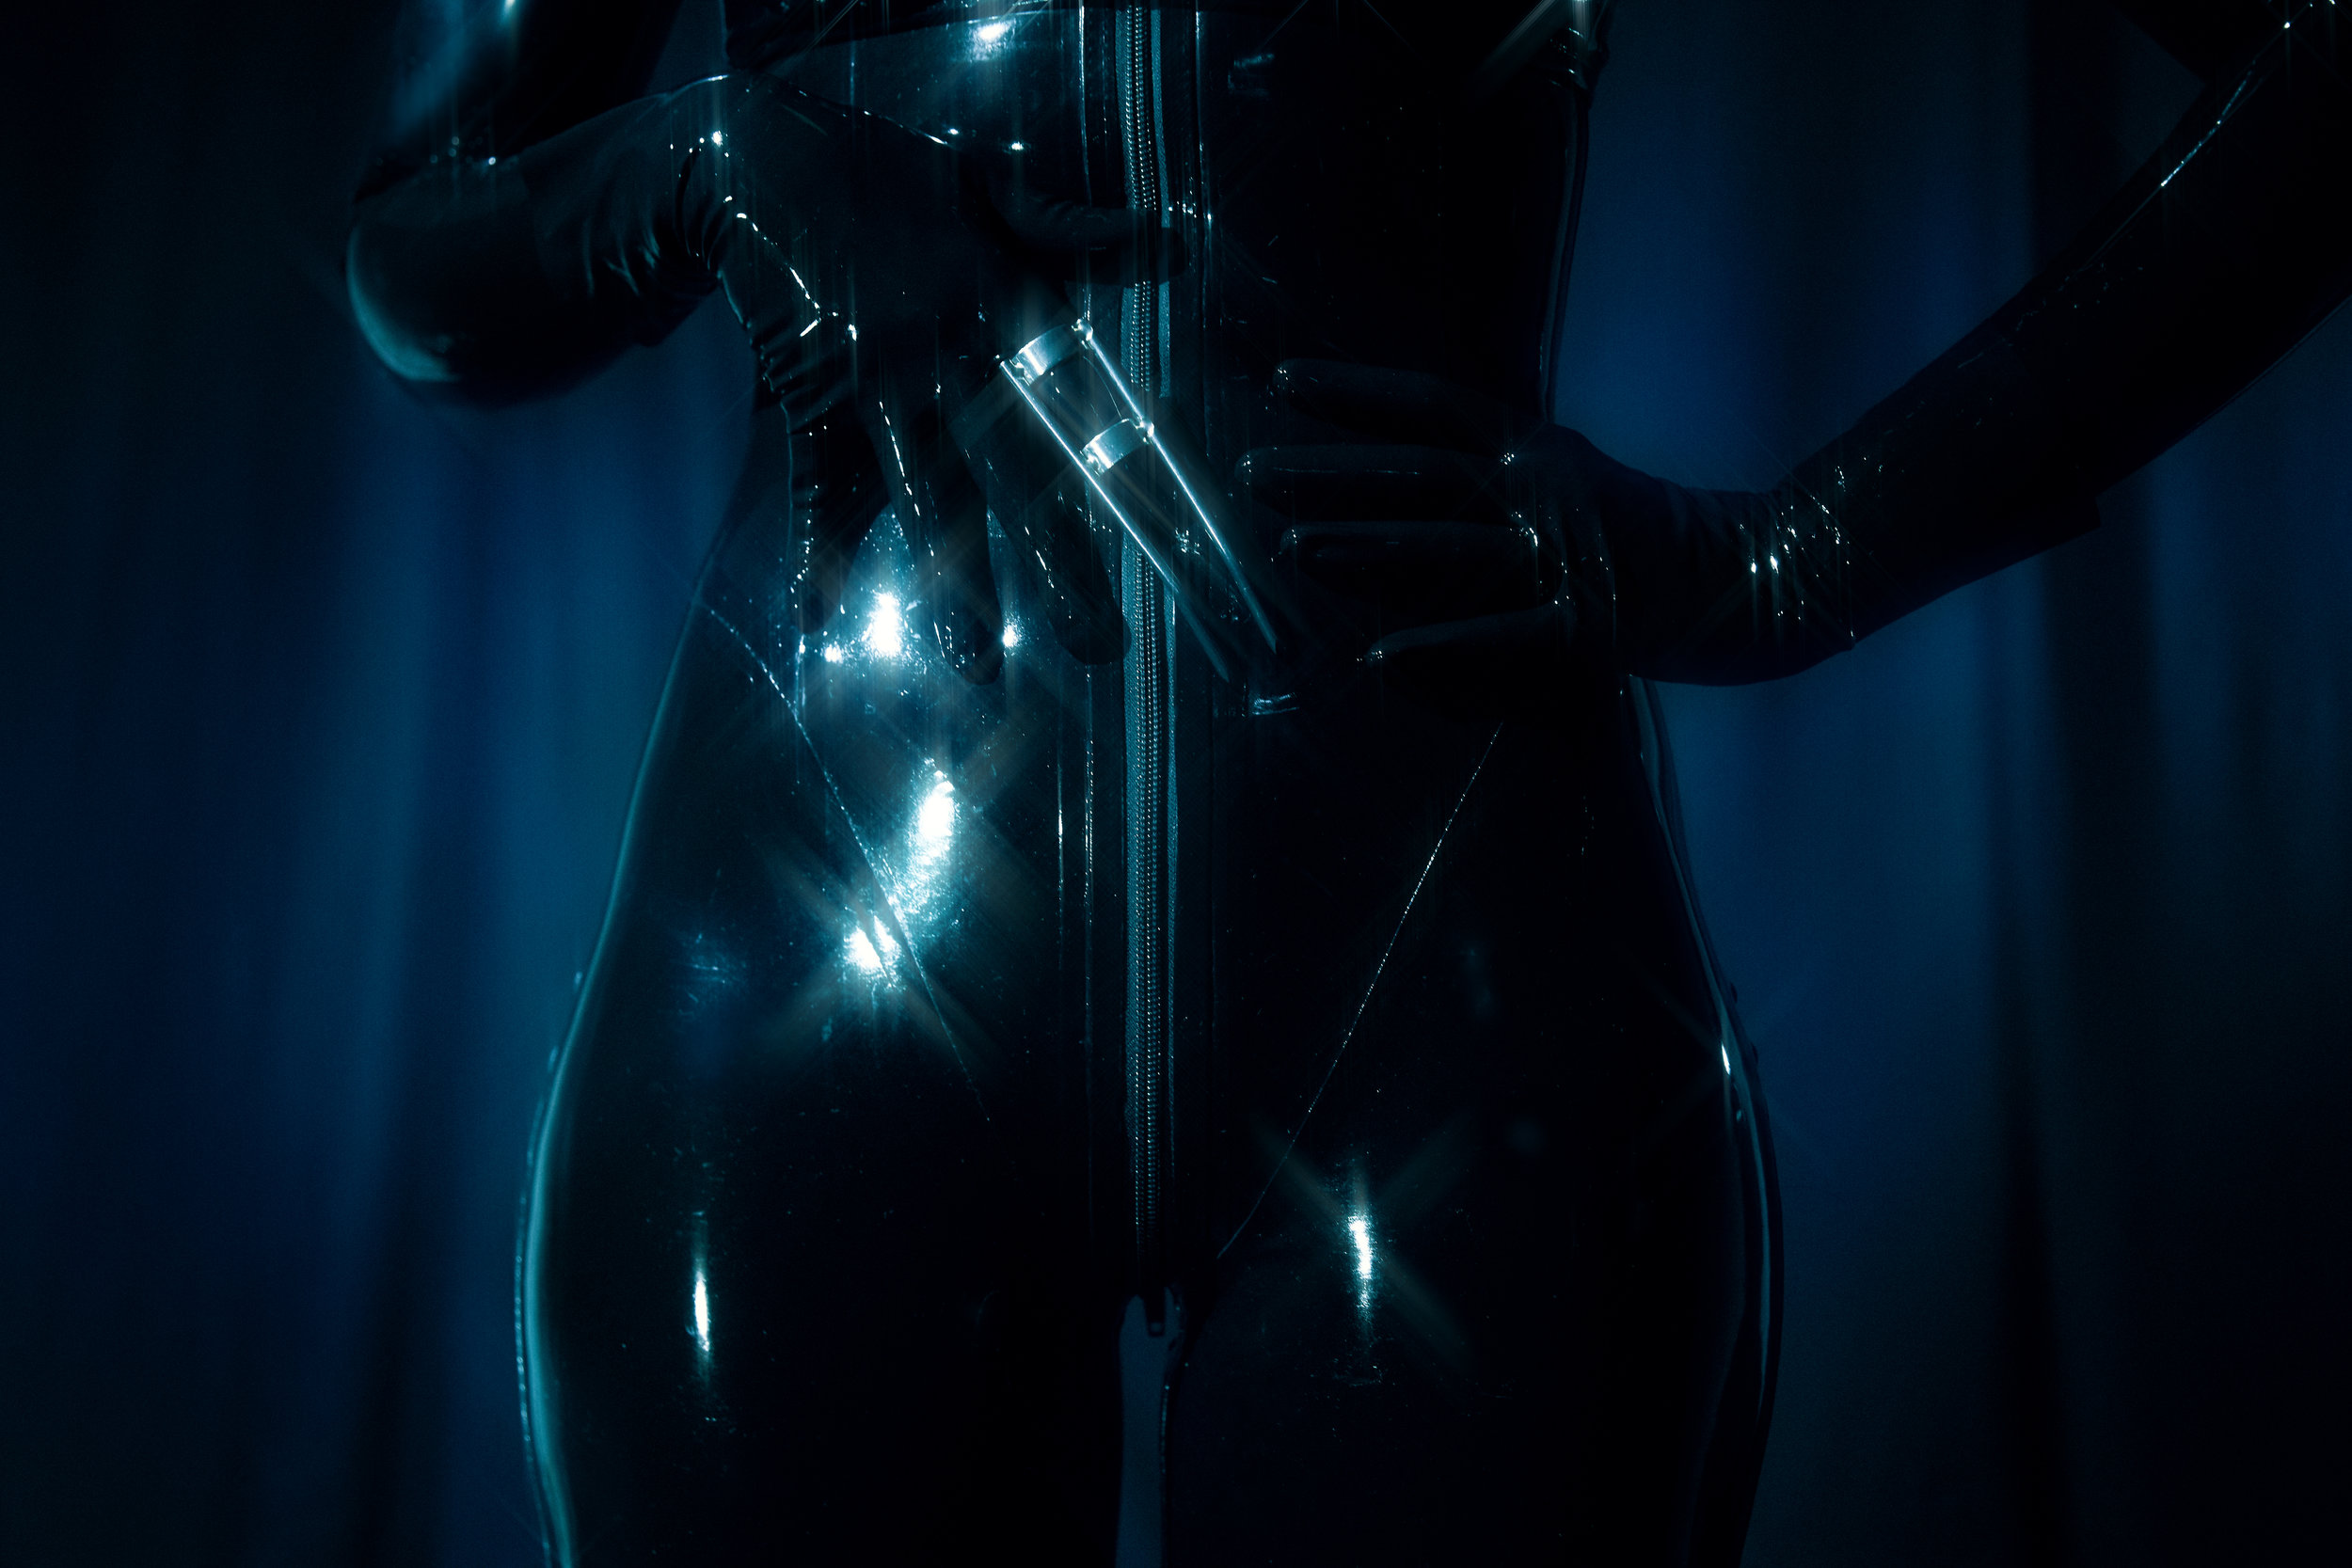 nyc-rubberist-bdsm-mistress-medical-domme.jpg